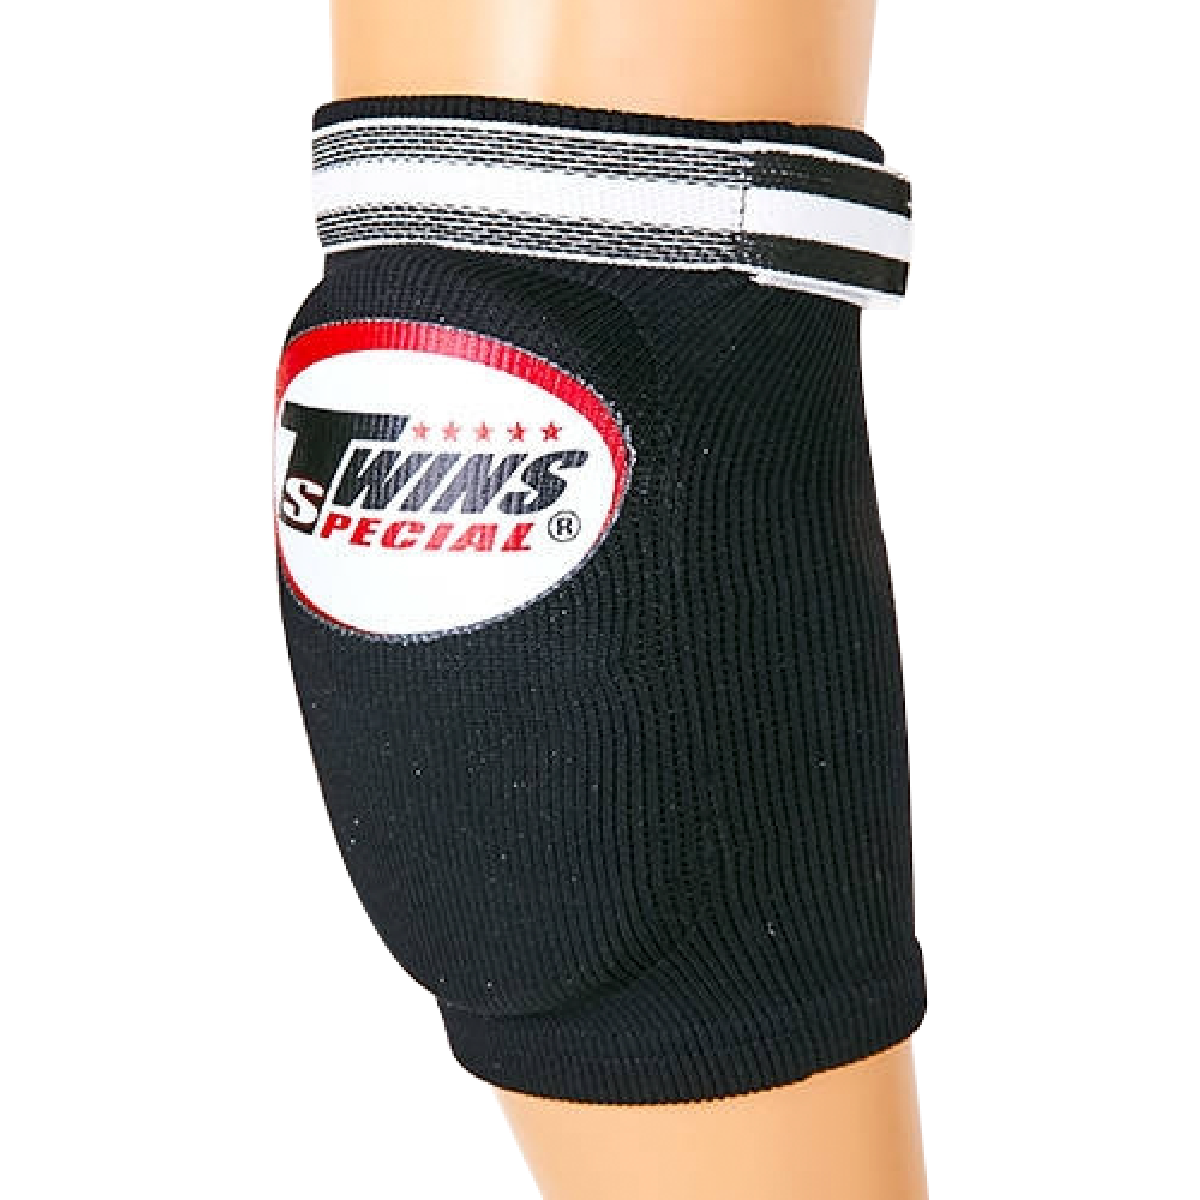 Bảo Hộ Chỏ Twins Egn1 Elbow Guards - Black